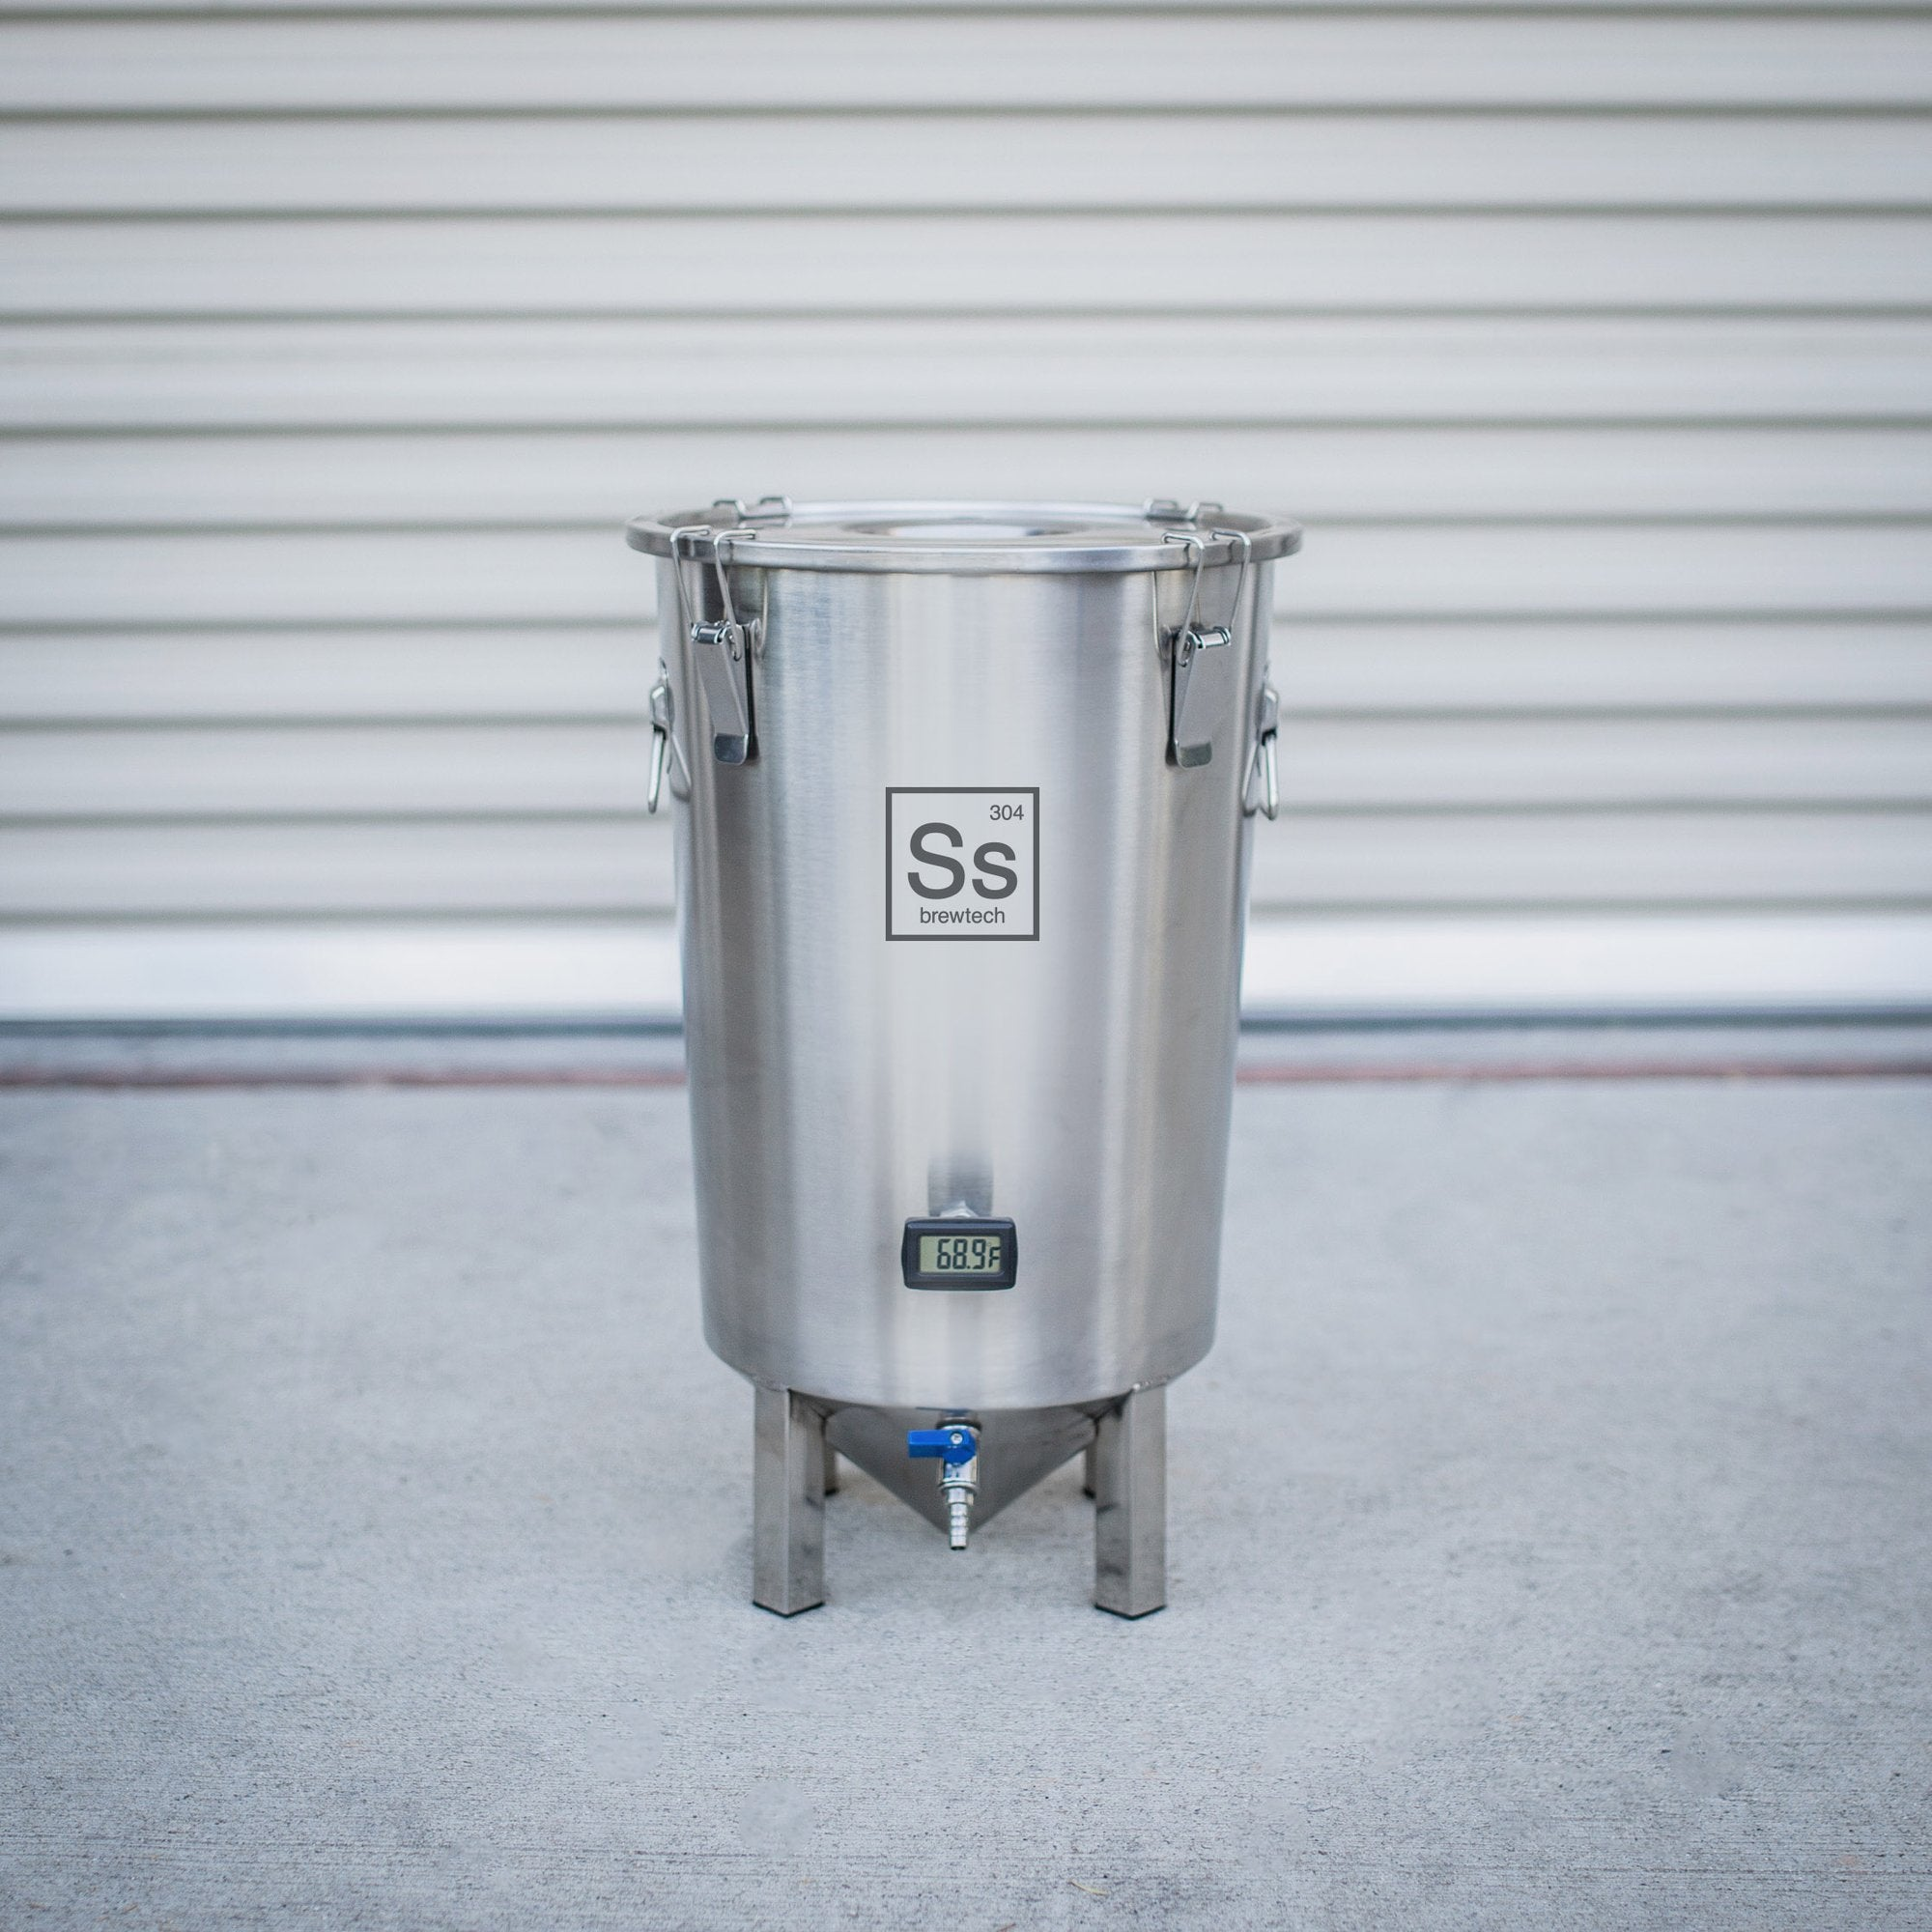 Ss brewtech Brew Bucket Brewmaster Edition - 26L